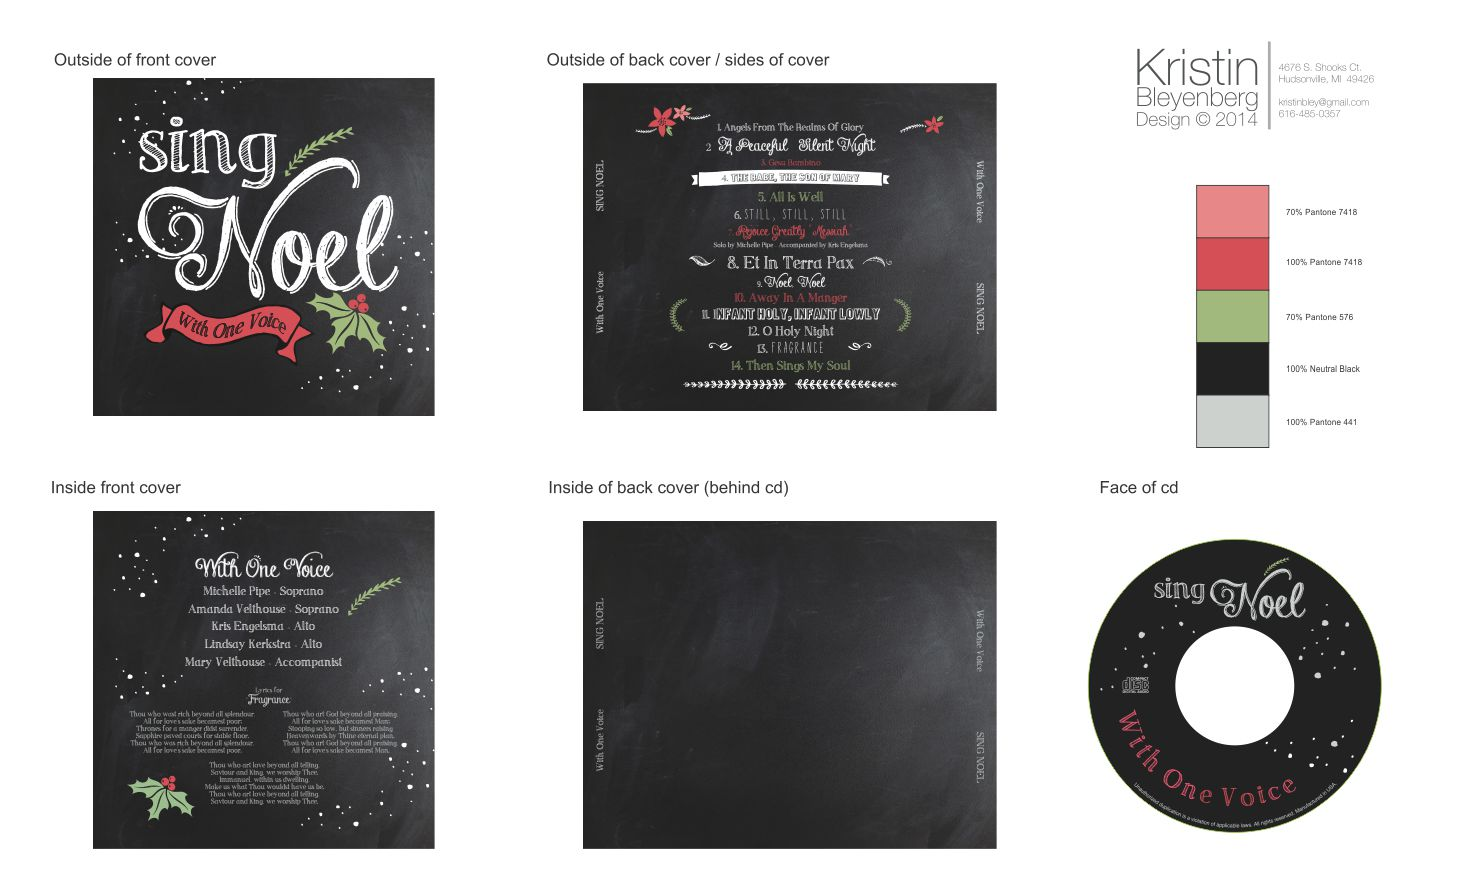 CD cover and face design